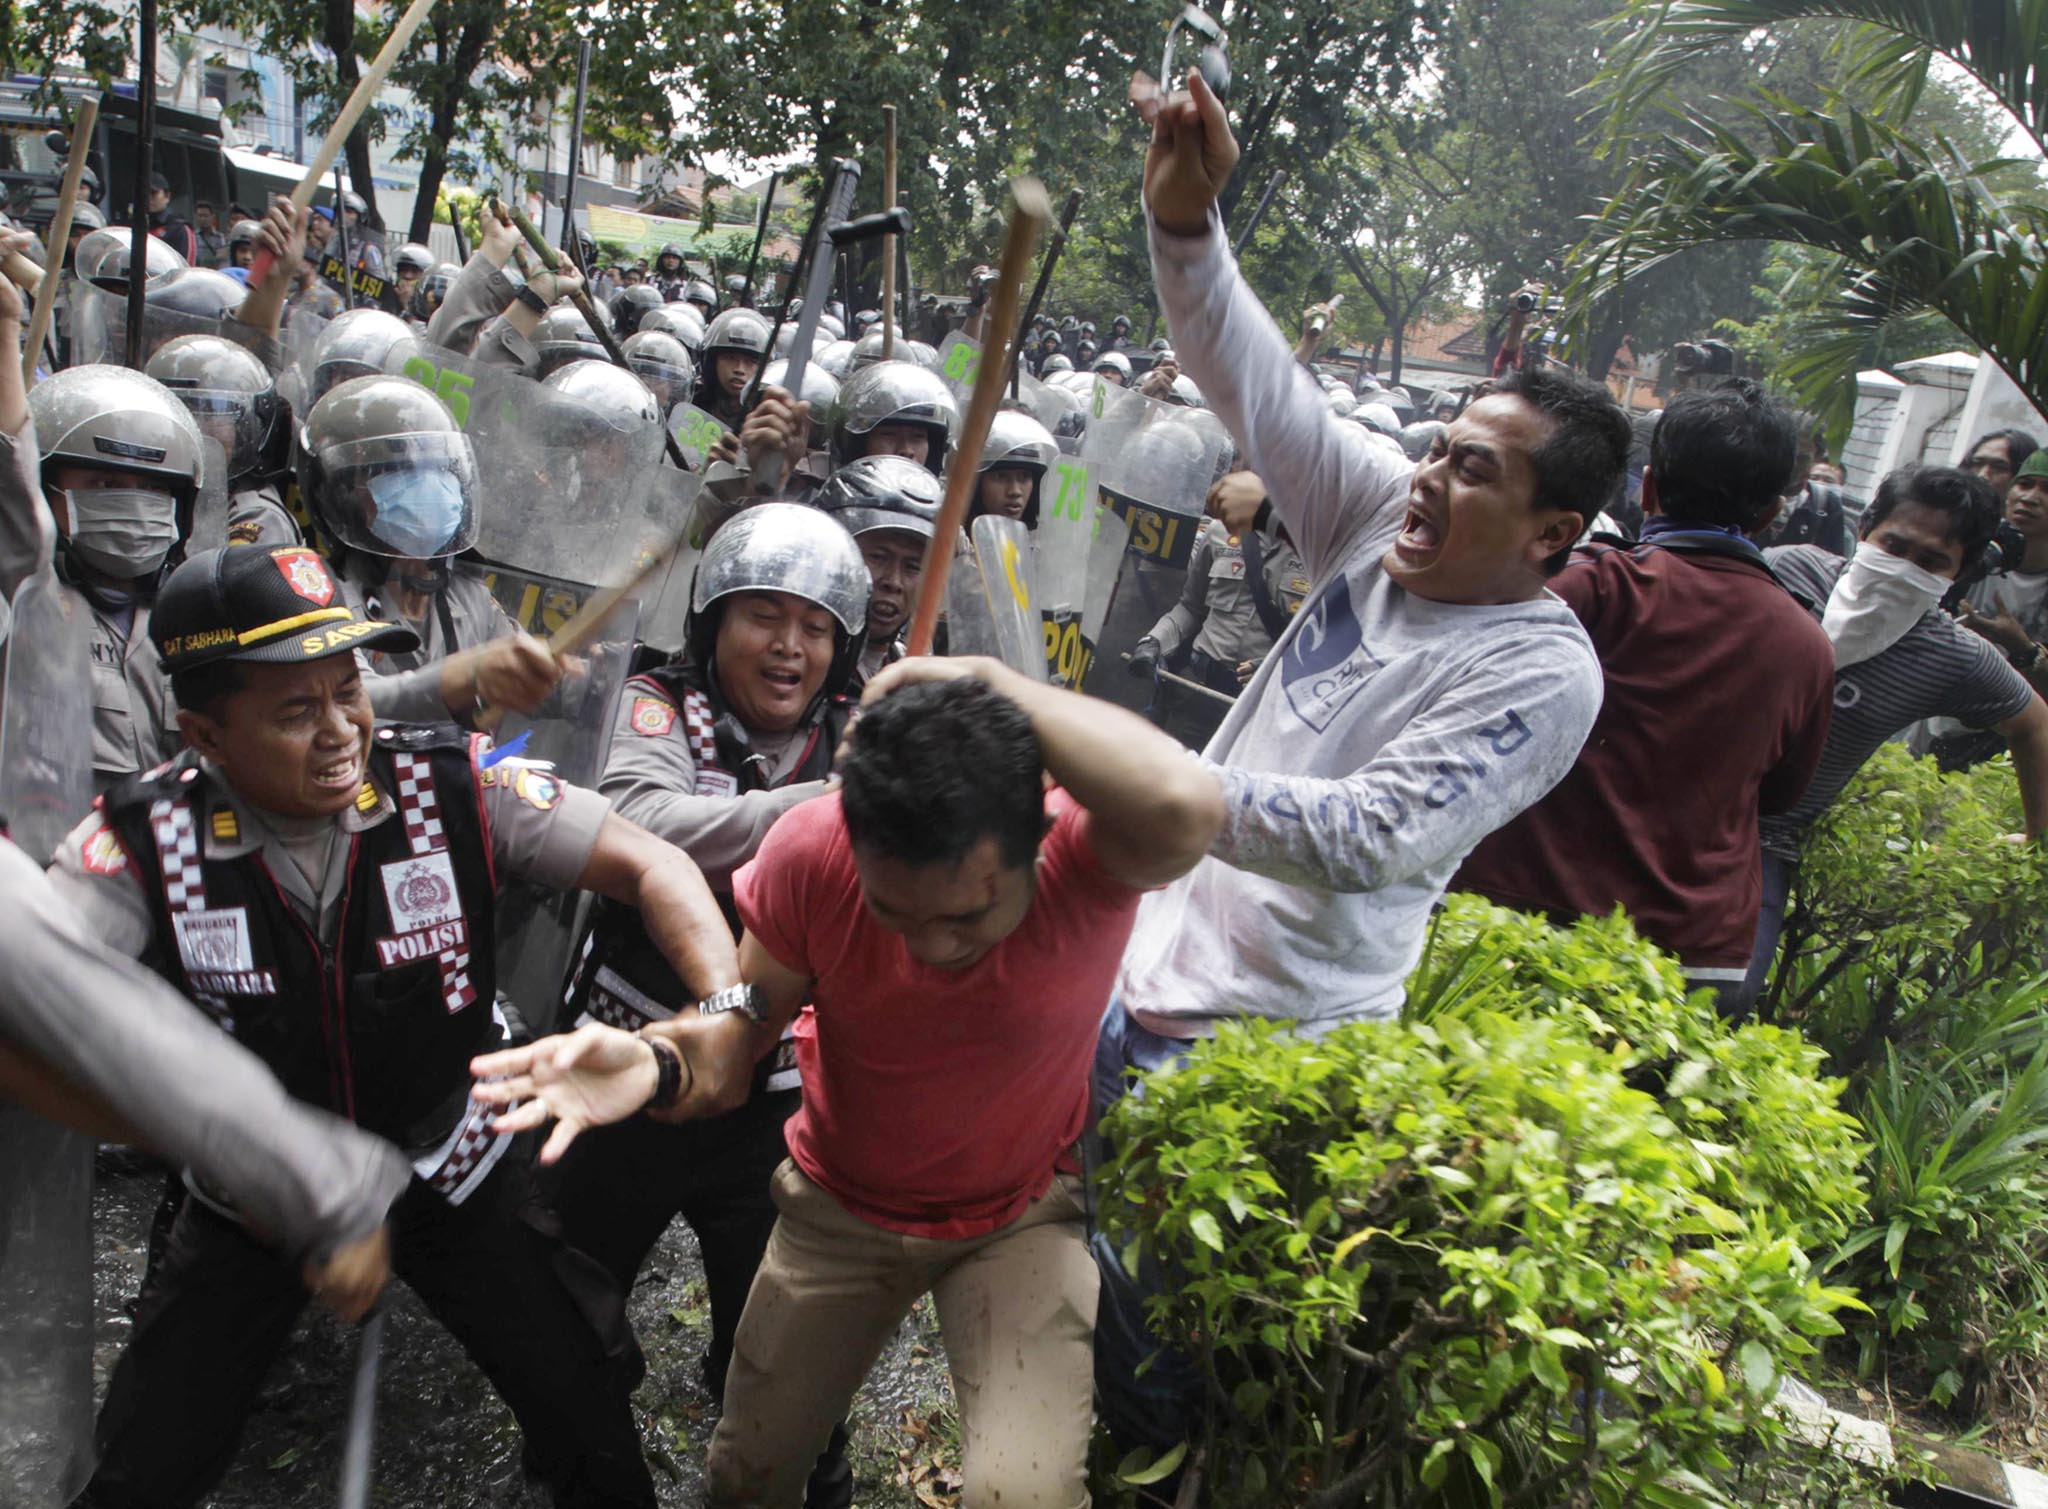 Police chase a supporter of Indonesia's losing presidential candidate Prabowo outside the General Election Commission office in Surabaya